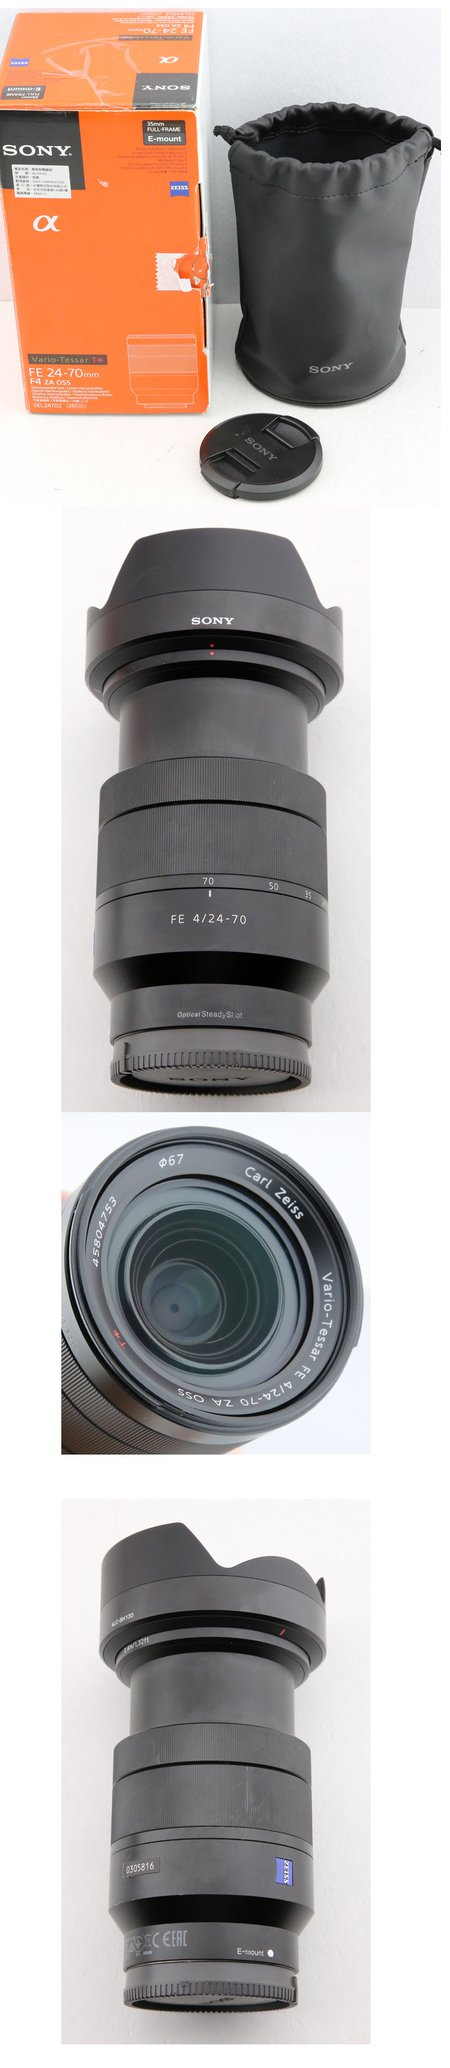 SONY FE 24-70mm f4 ZA #0305xx